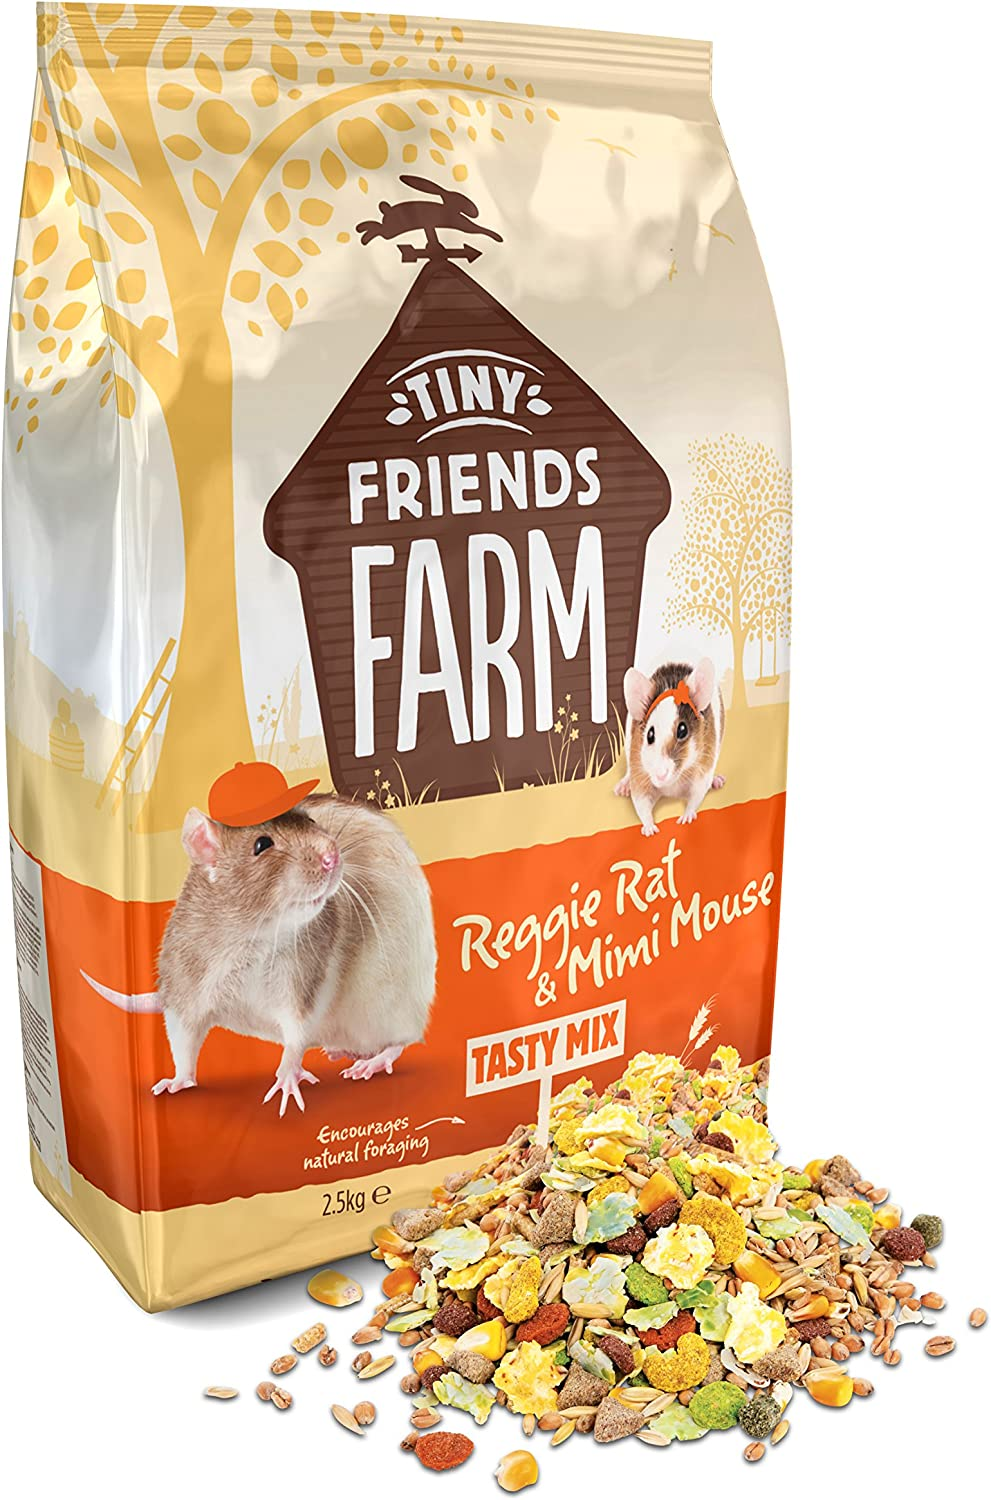 Supreme Tiny Friends Farm Reggie Rat and Mimi Mouse Tasty Mix 6lb